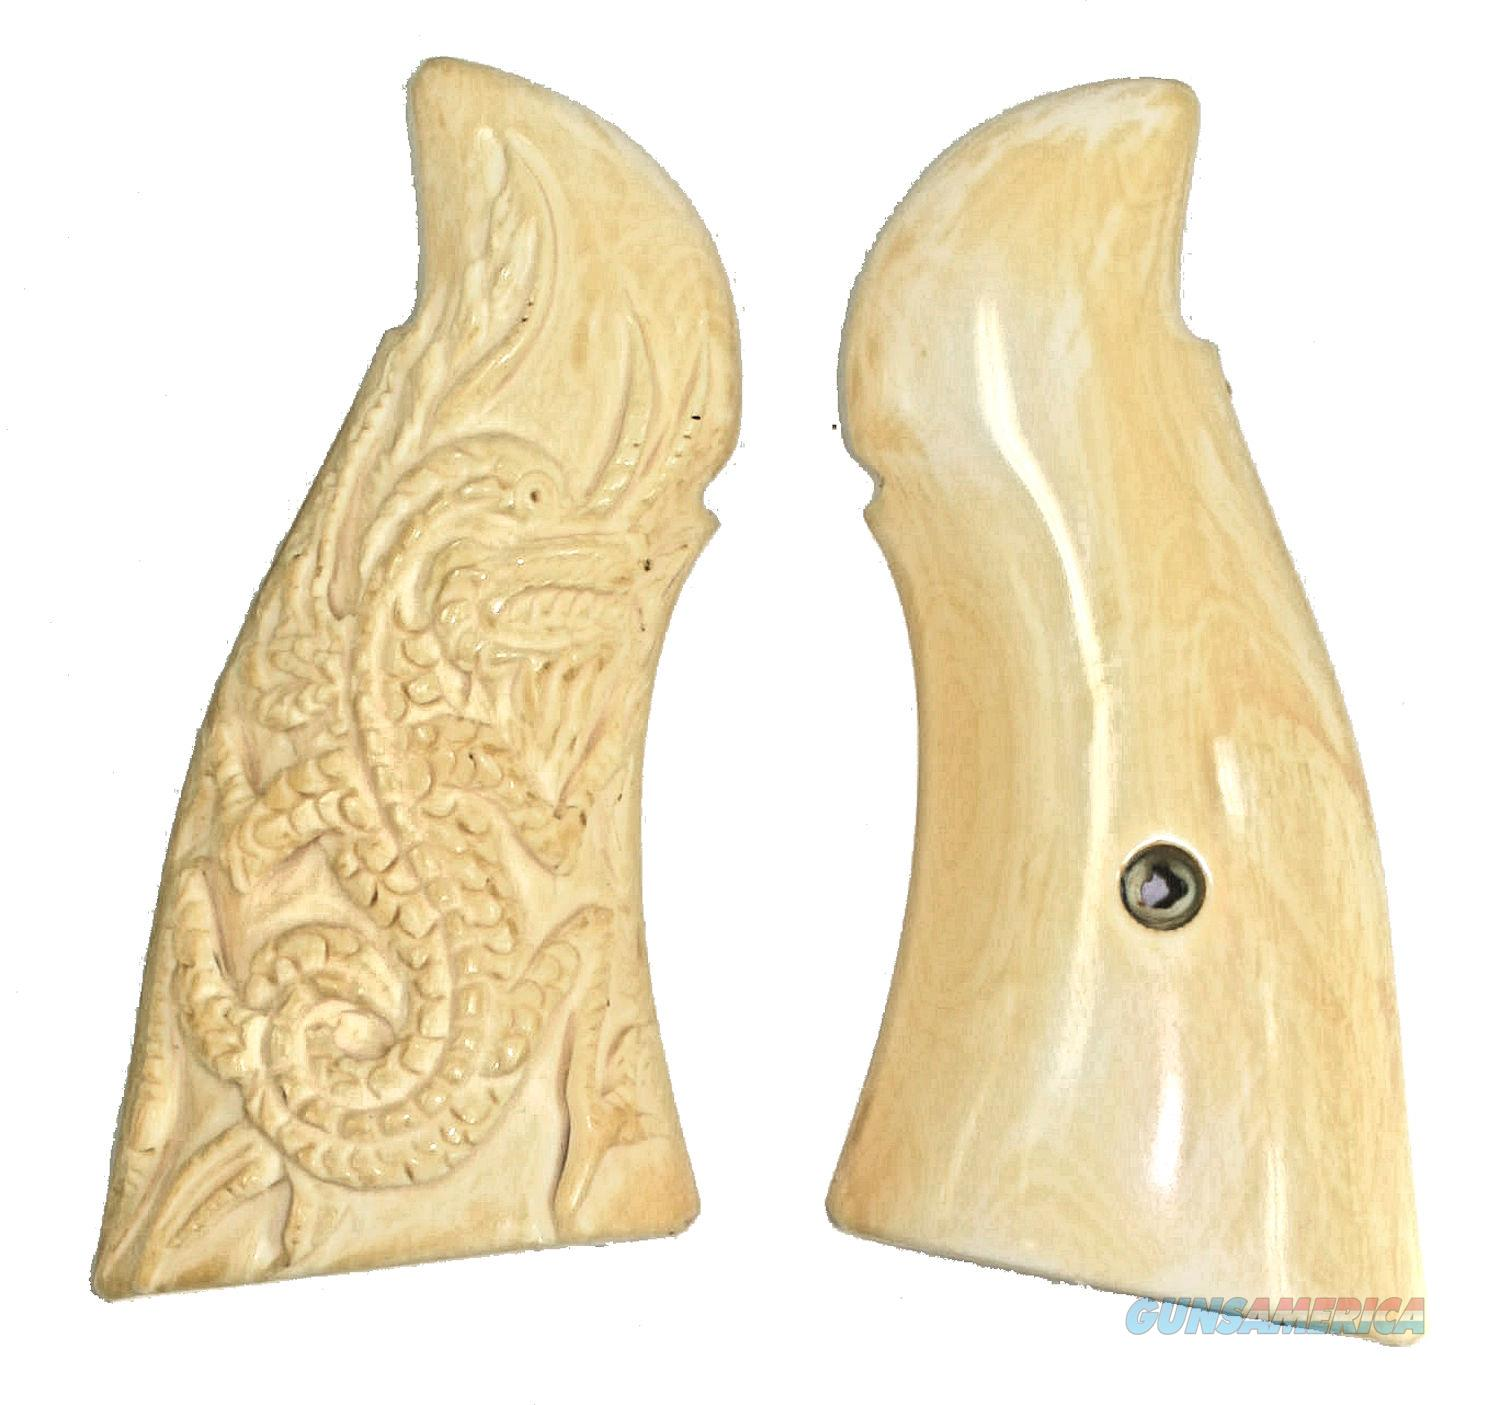 Smith & Wesson N Frame Real Ivory Grips With Carved Dragon  Non-Guns > Gun Parts > Grips > Smith & Wesson